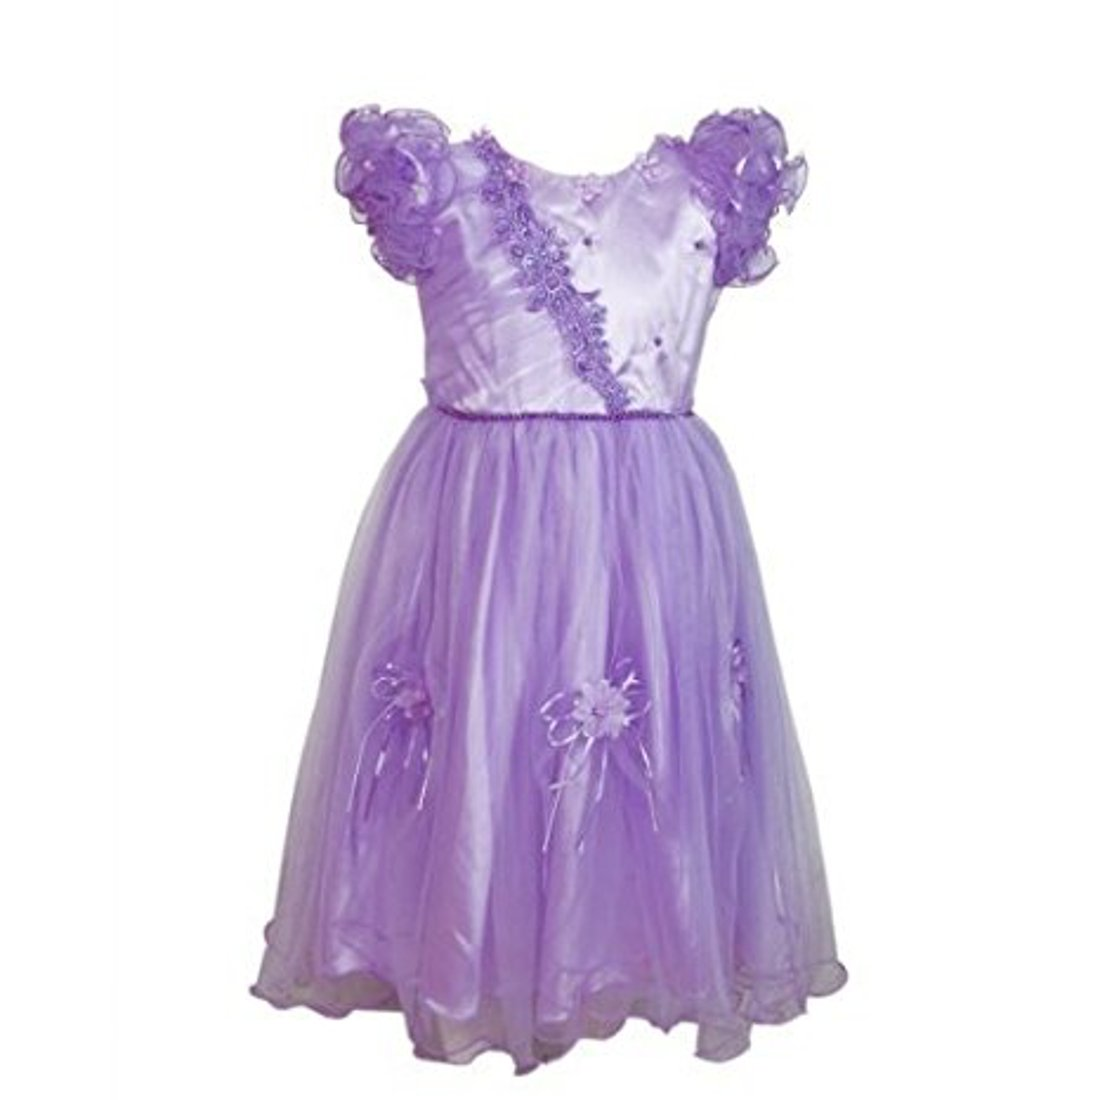 7ea81ca97de0 Girls Party Dress Flower Christening Communion Formal Party Wedding ...